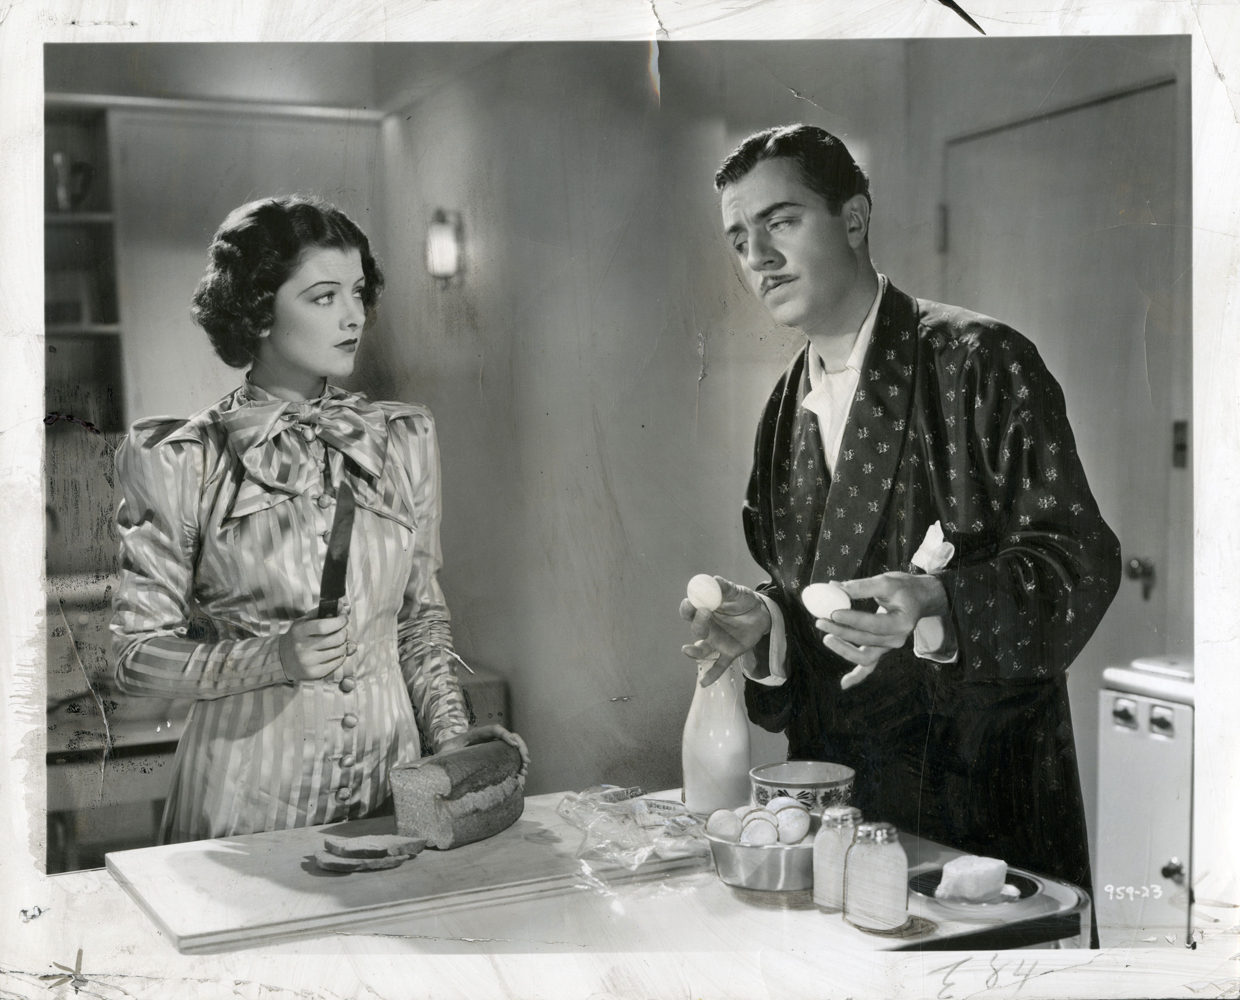 after the thin man 1936 scene still photo 959-23